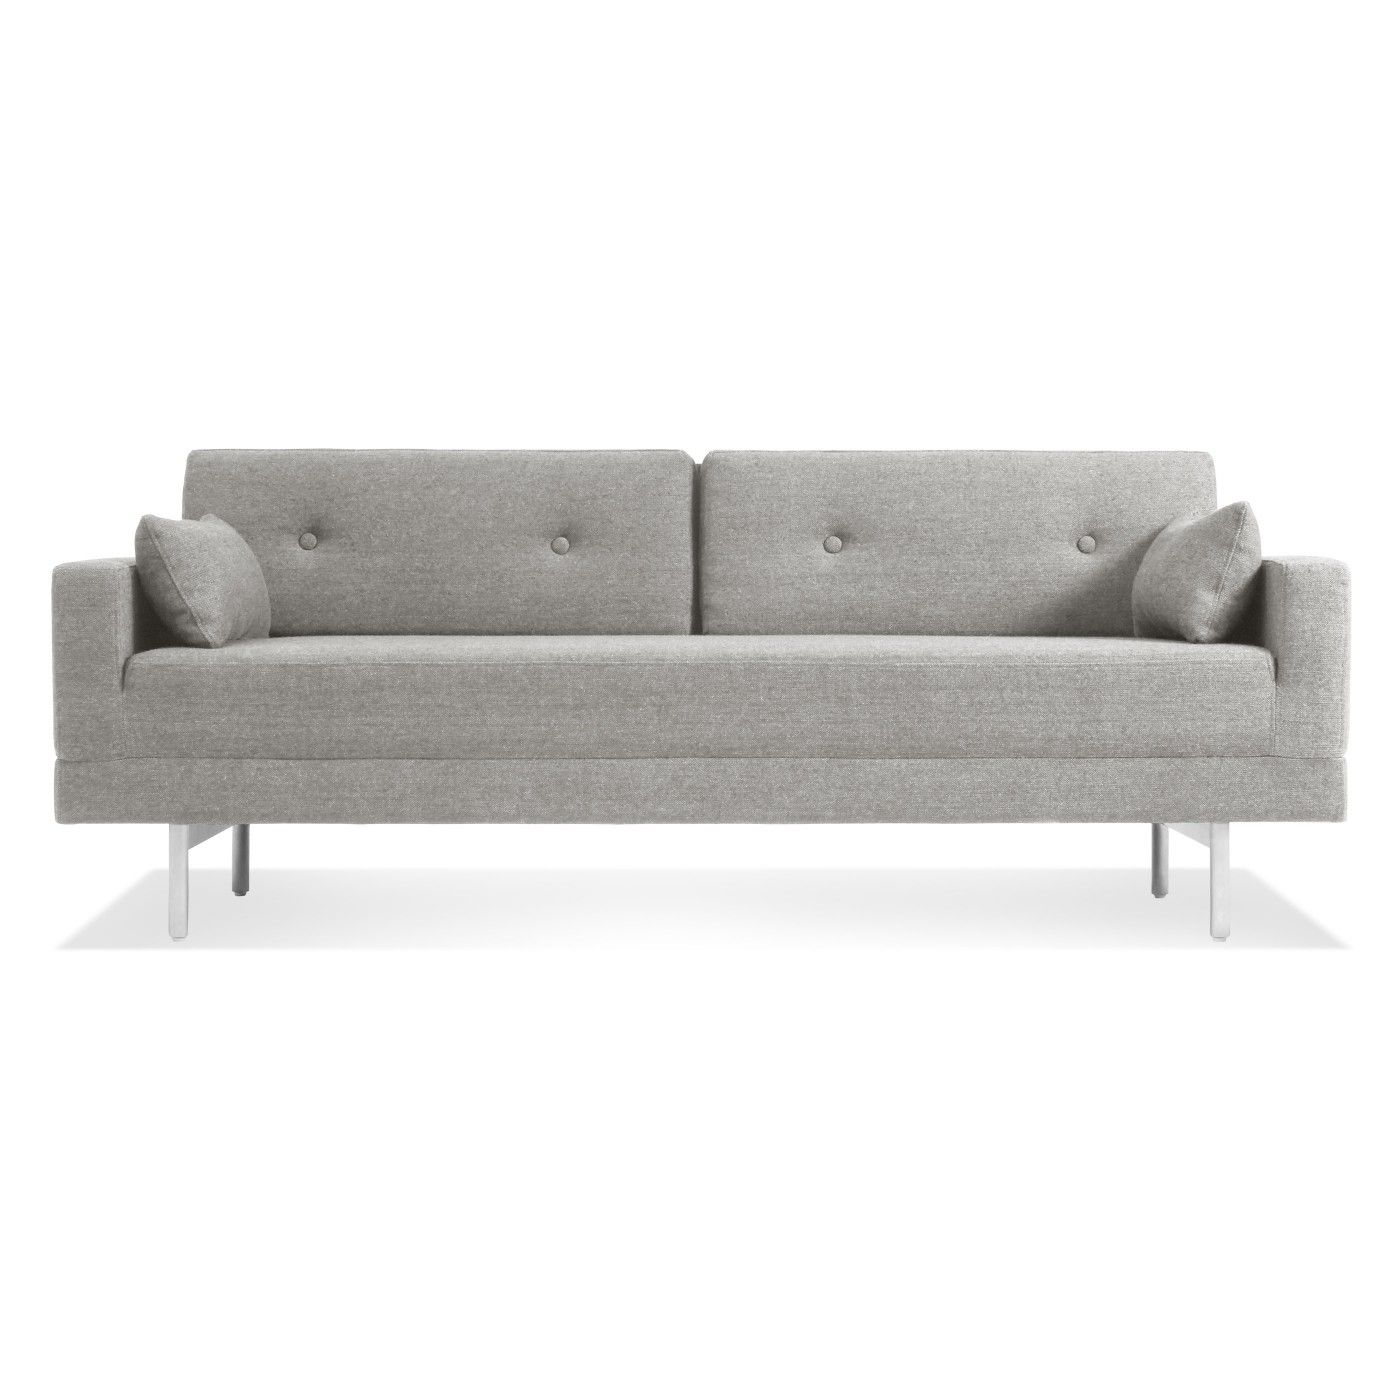 One Night Stand 80 Sleeper Sofa With Images Best Sleeper Sofa Modern Sleeper Sofa Sleeper Sofa